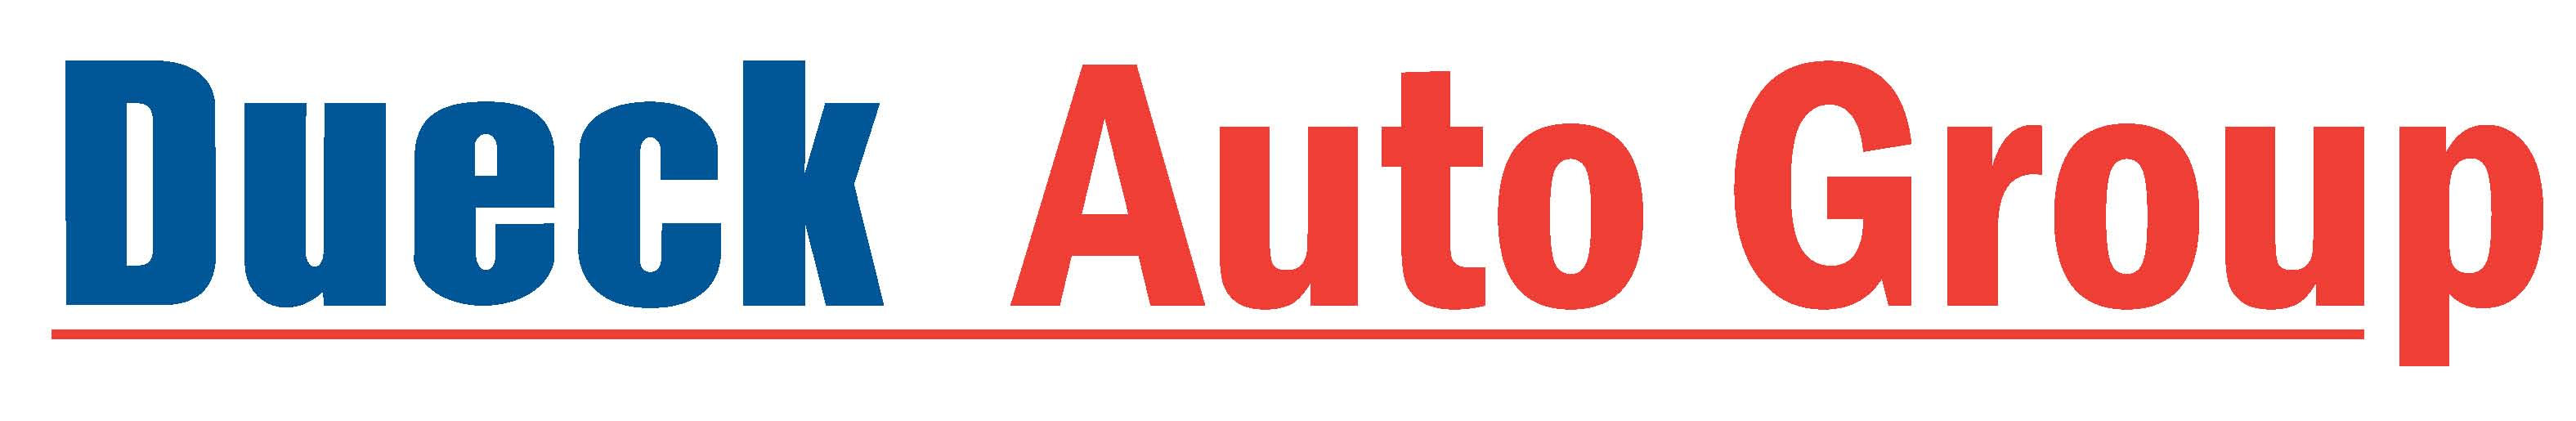 dueckAutoGroup